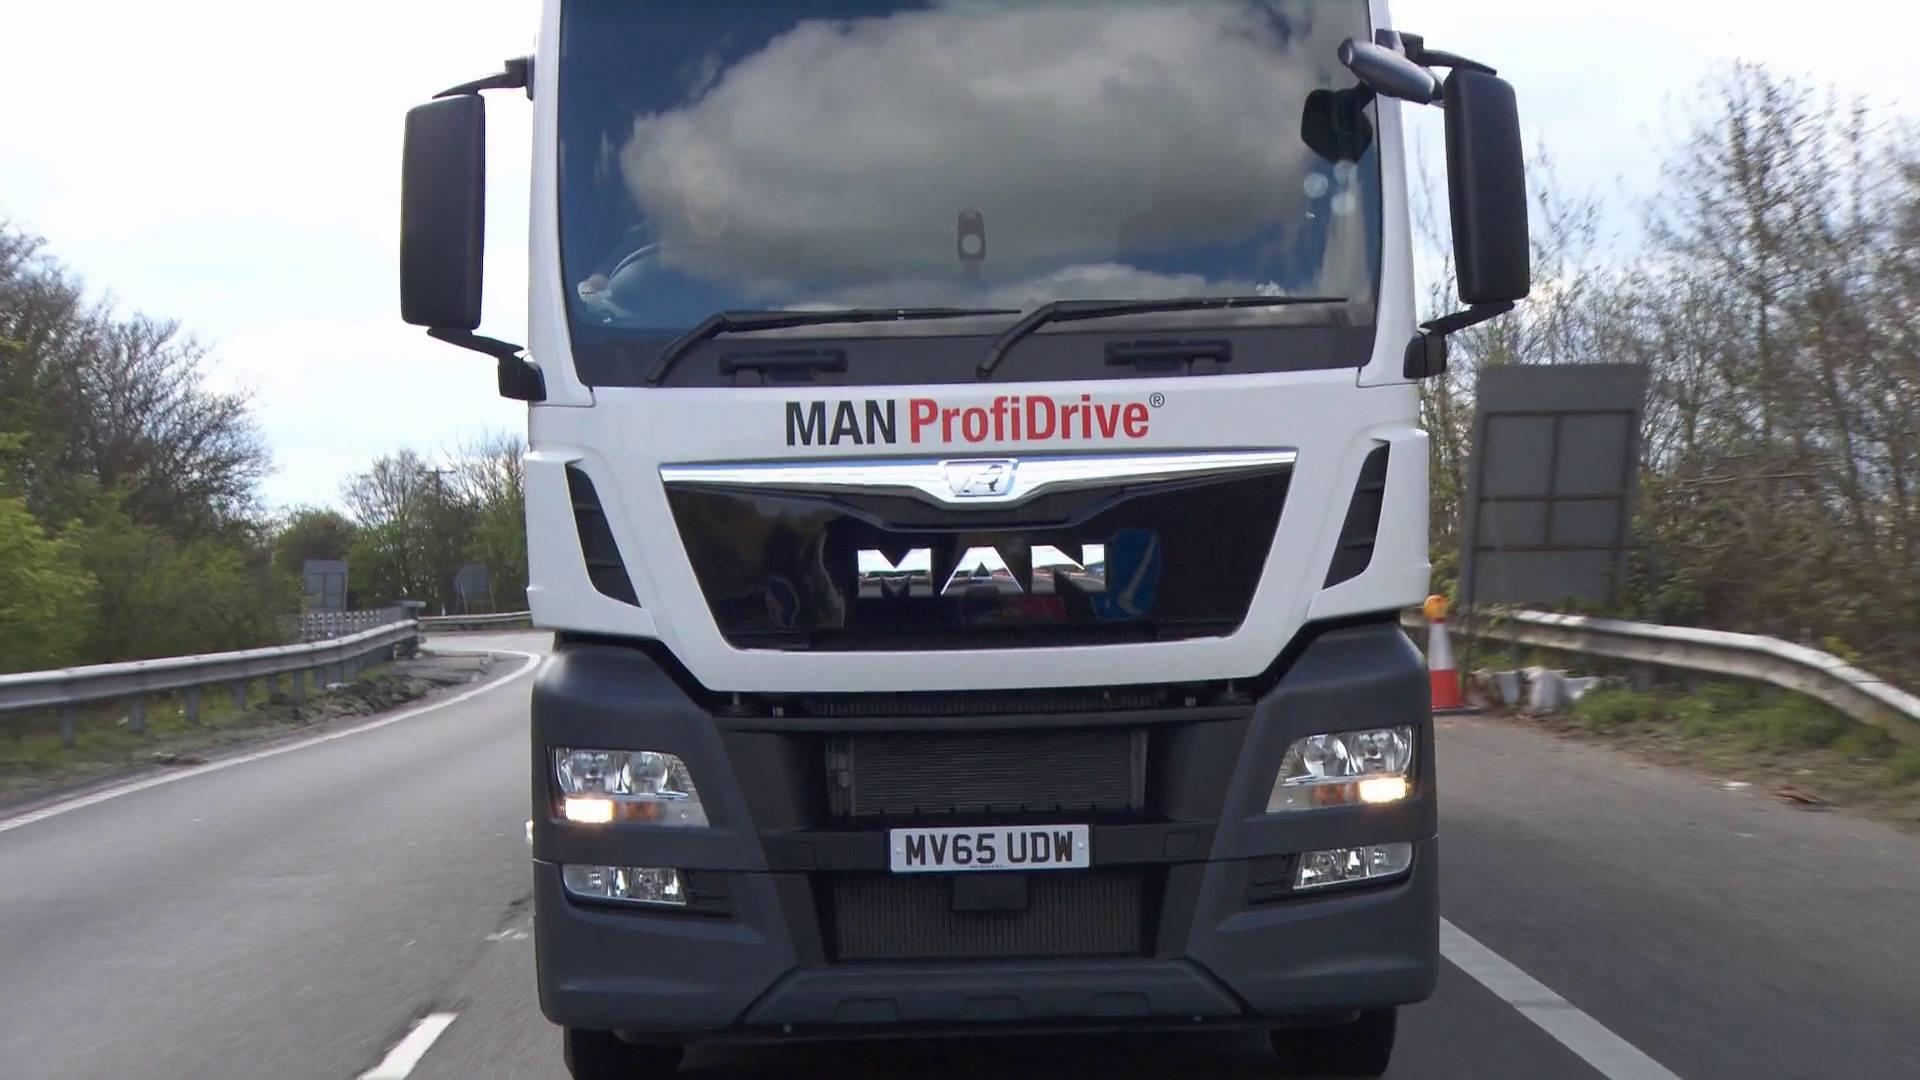 MAN Fleet Management - Telematics & Workshop Management